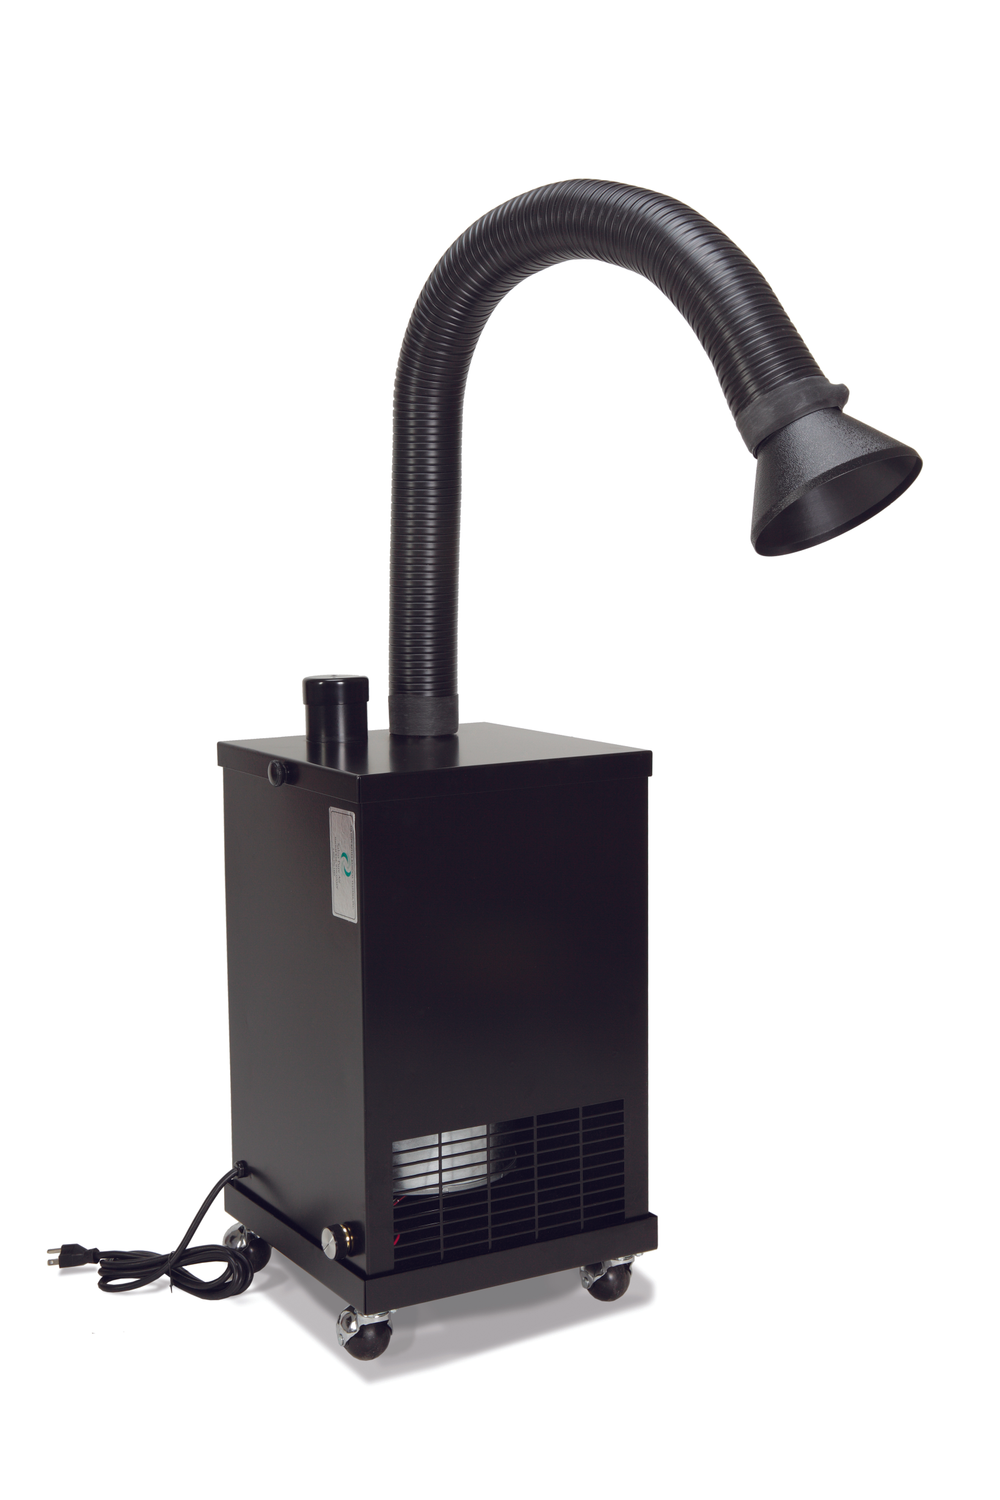 <p>FAVORITE VENTILATION SYSTEM</p> <p>1. <strong>Air Impurities Removal Systems:</strong> Salon Pure Air</p> <p>2. <strong>Medicool:</strong> Mani-Vac by Medicool</p> <p>3. <strong>Valentino:</strong> Beauty Pure</p> <p>4. <strong>Farouk Systems:</strong> CHI Ionic Manicure Lamp</p> <p>5. <strong>Aerovex Systems:</strong> &ldquo;The One That Works&rdquo; Salon Air Purifier</p>